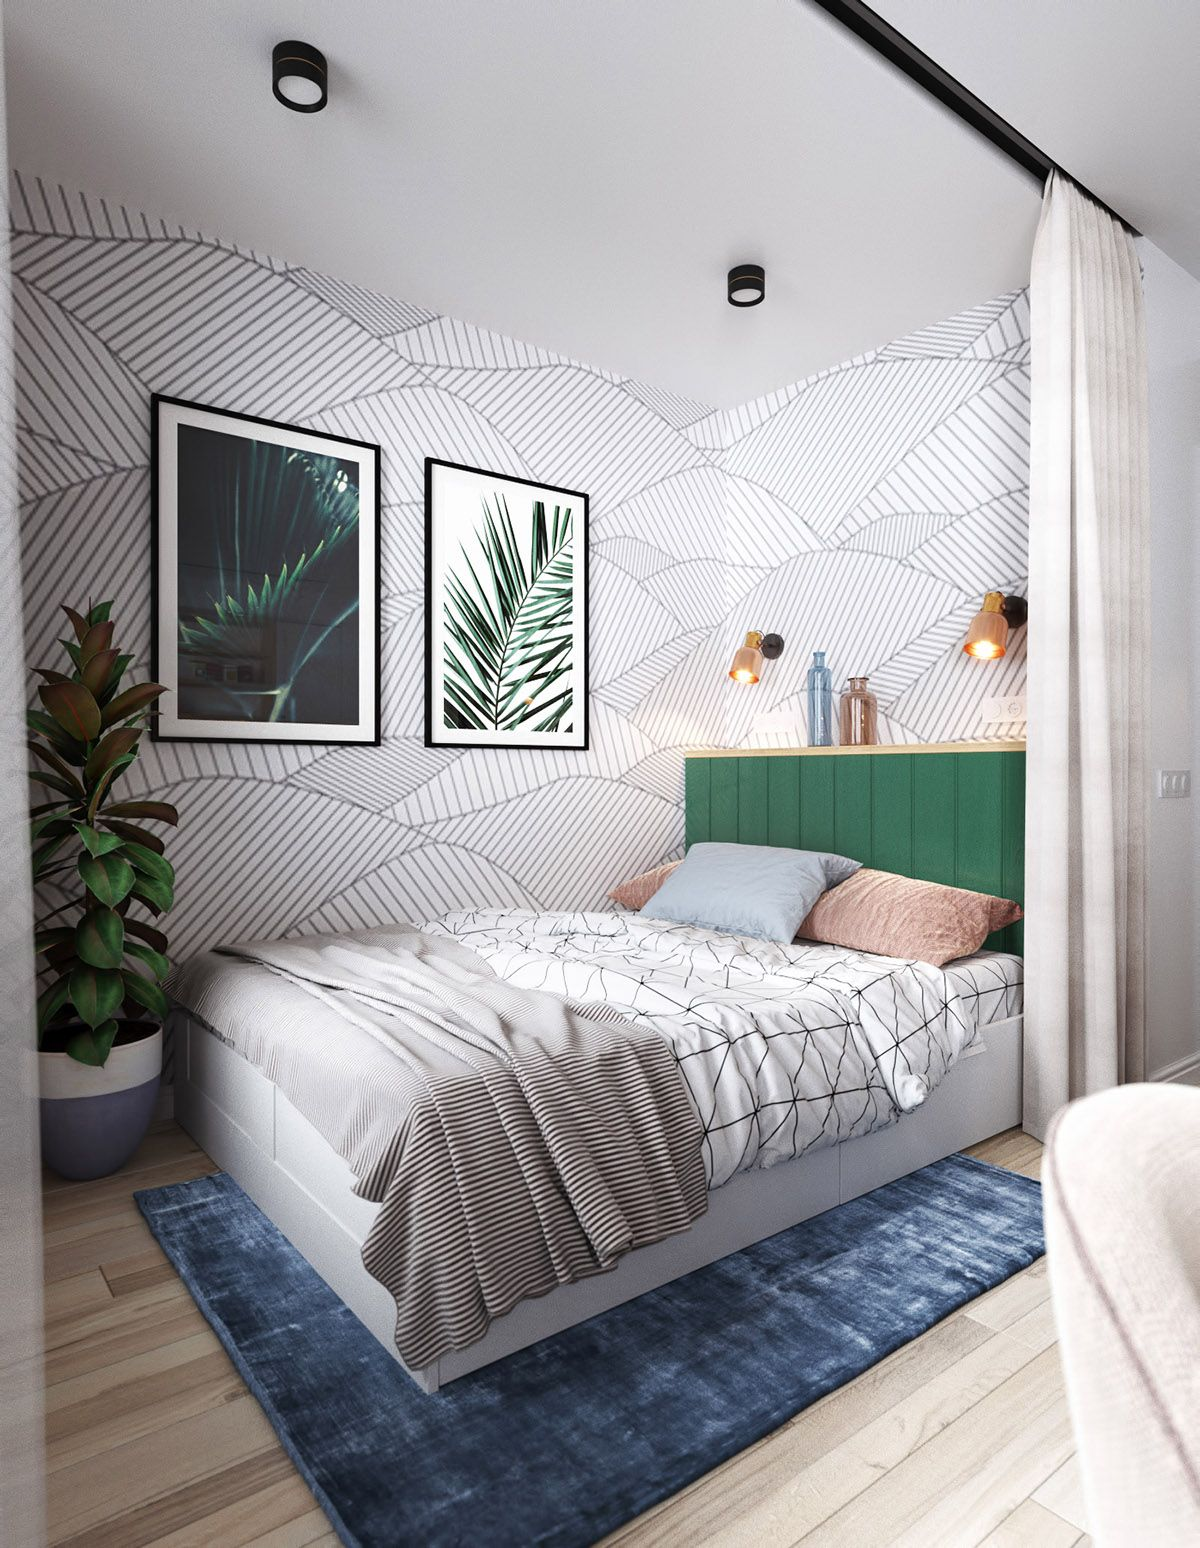 Help Designing A Room: 51 Green Bedrooms With Tips And Accessories To Help You